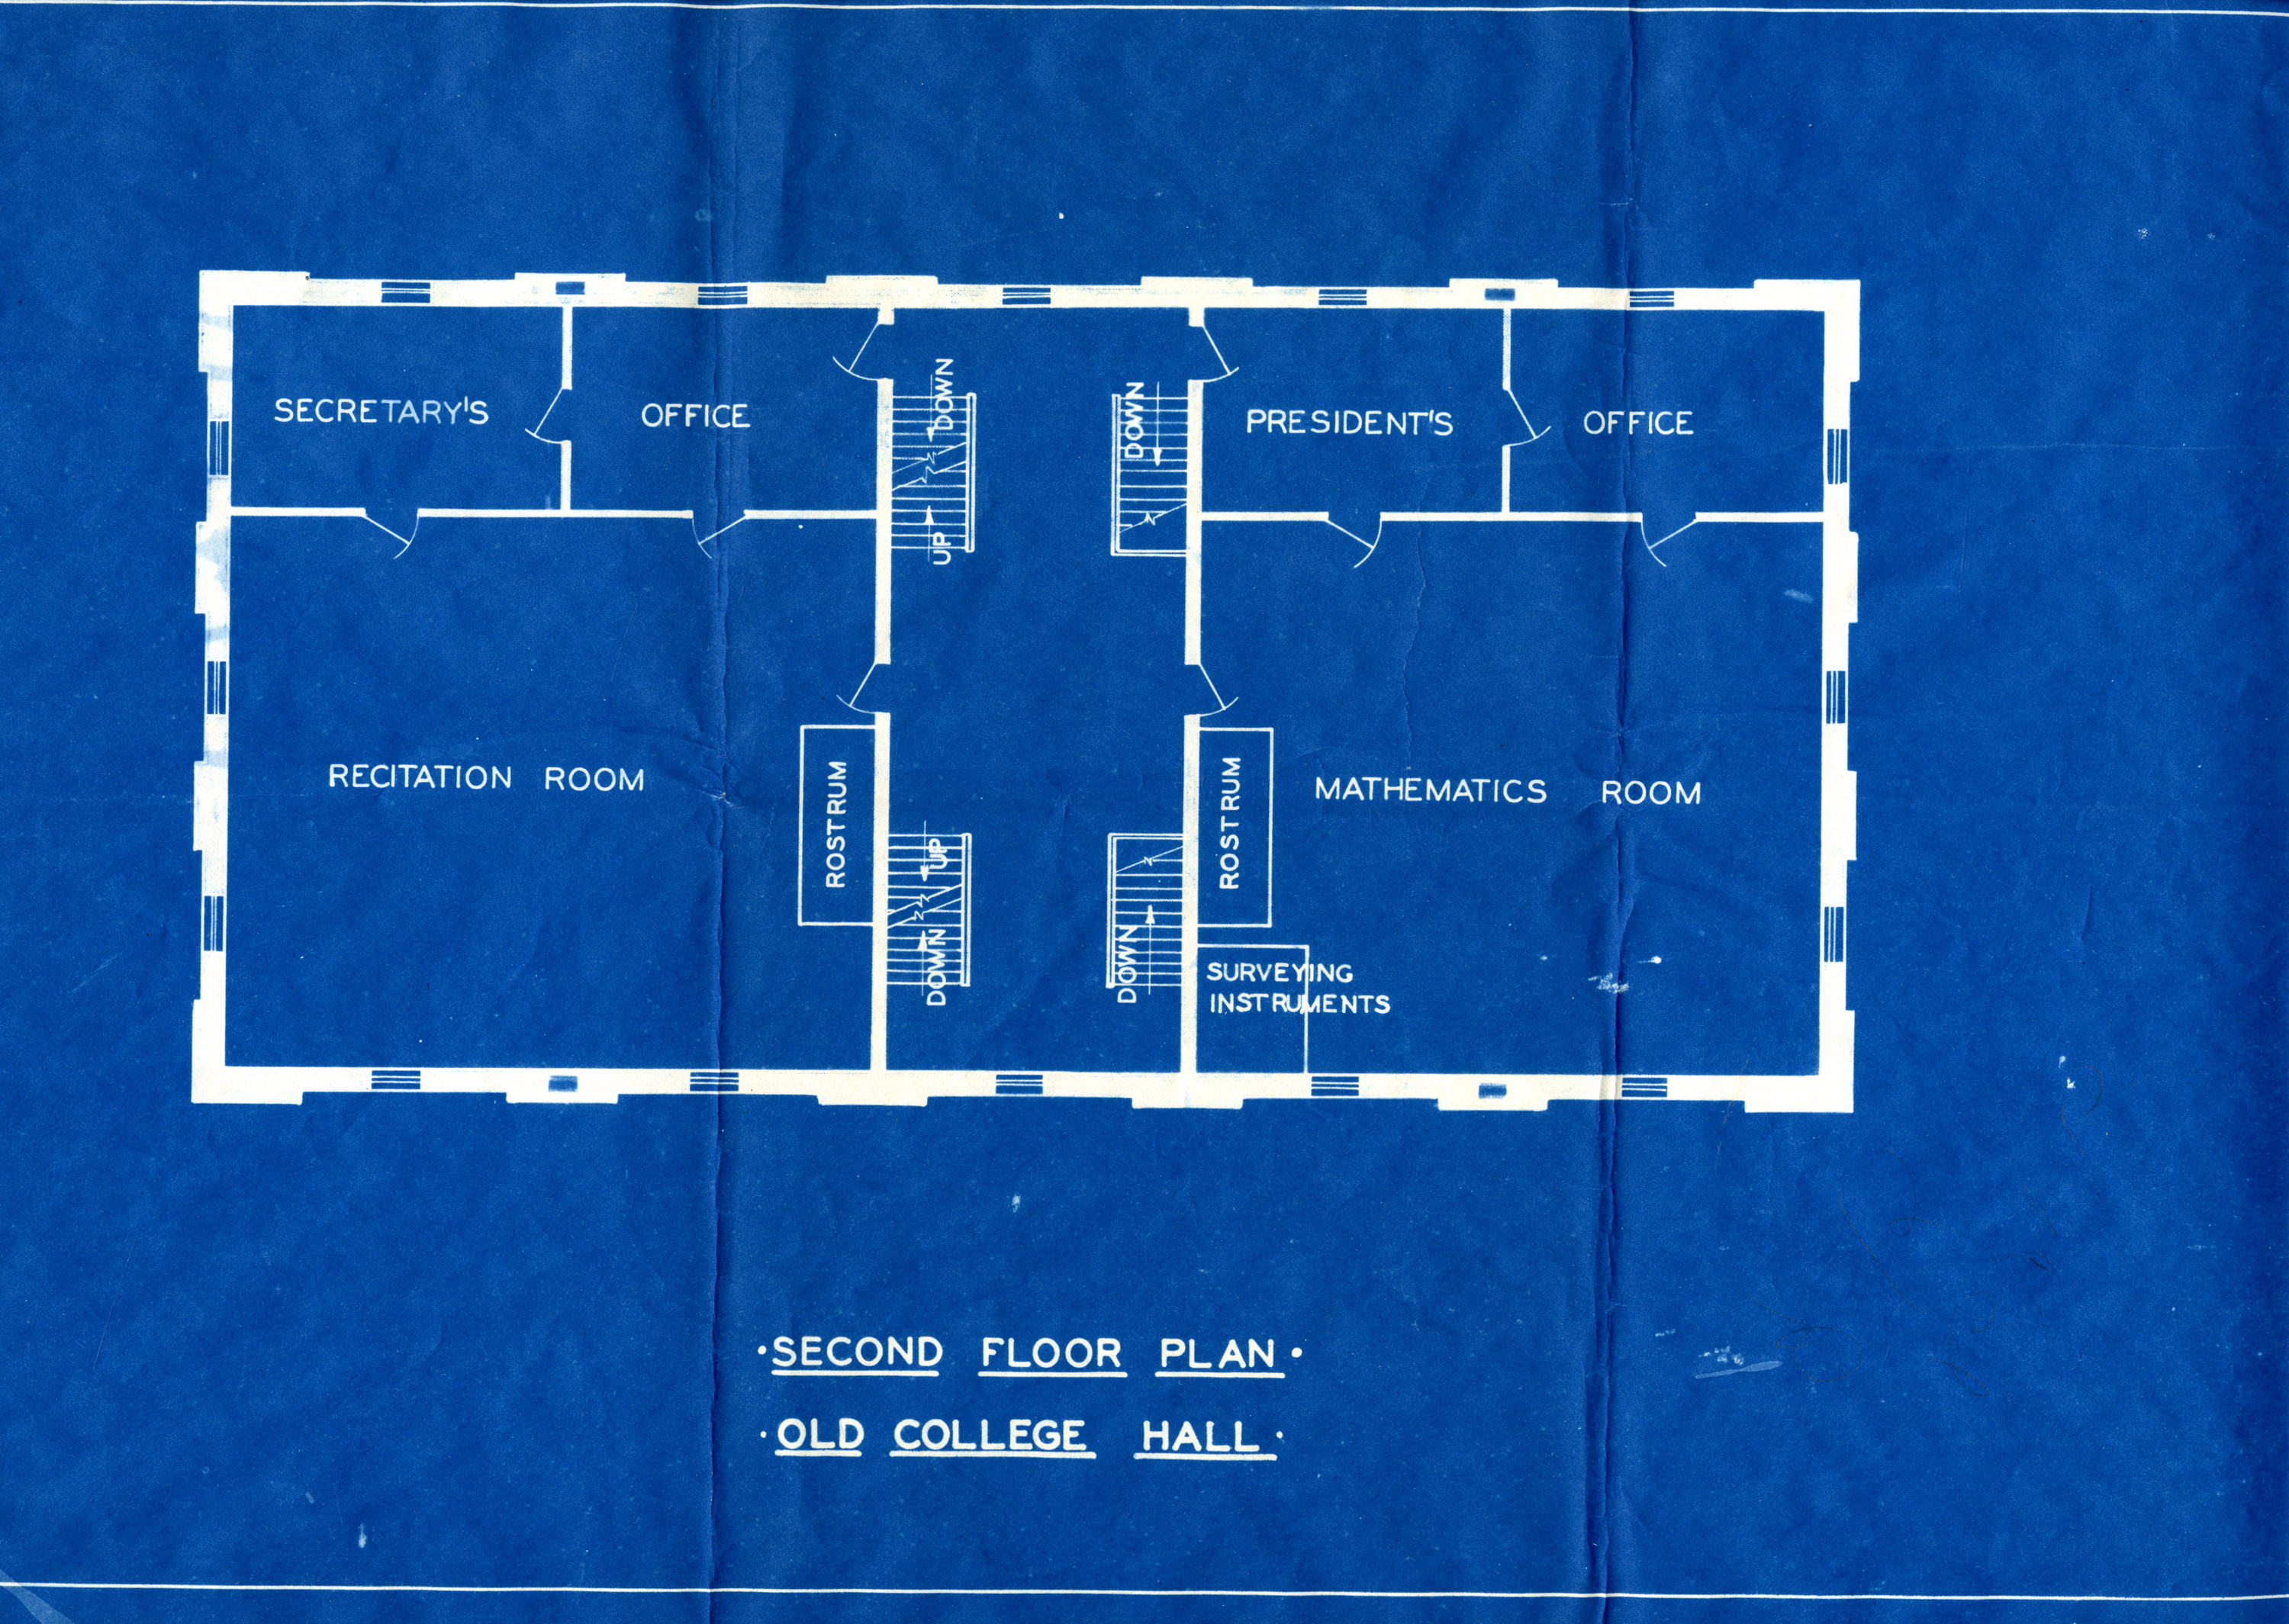 Blue Print for College Hall, Second Floor